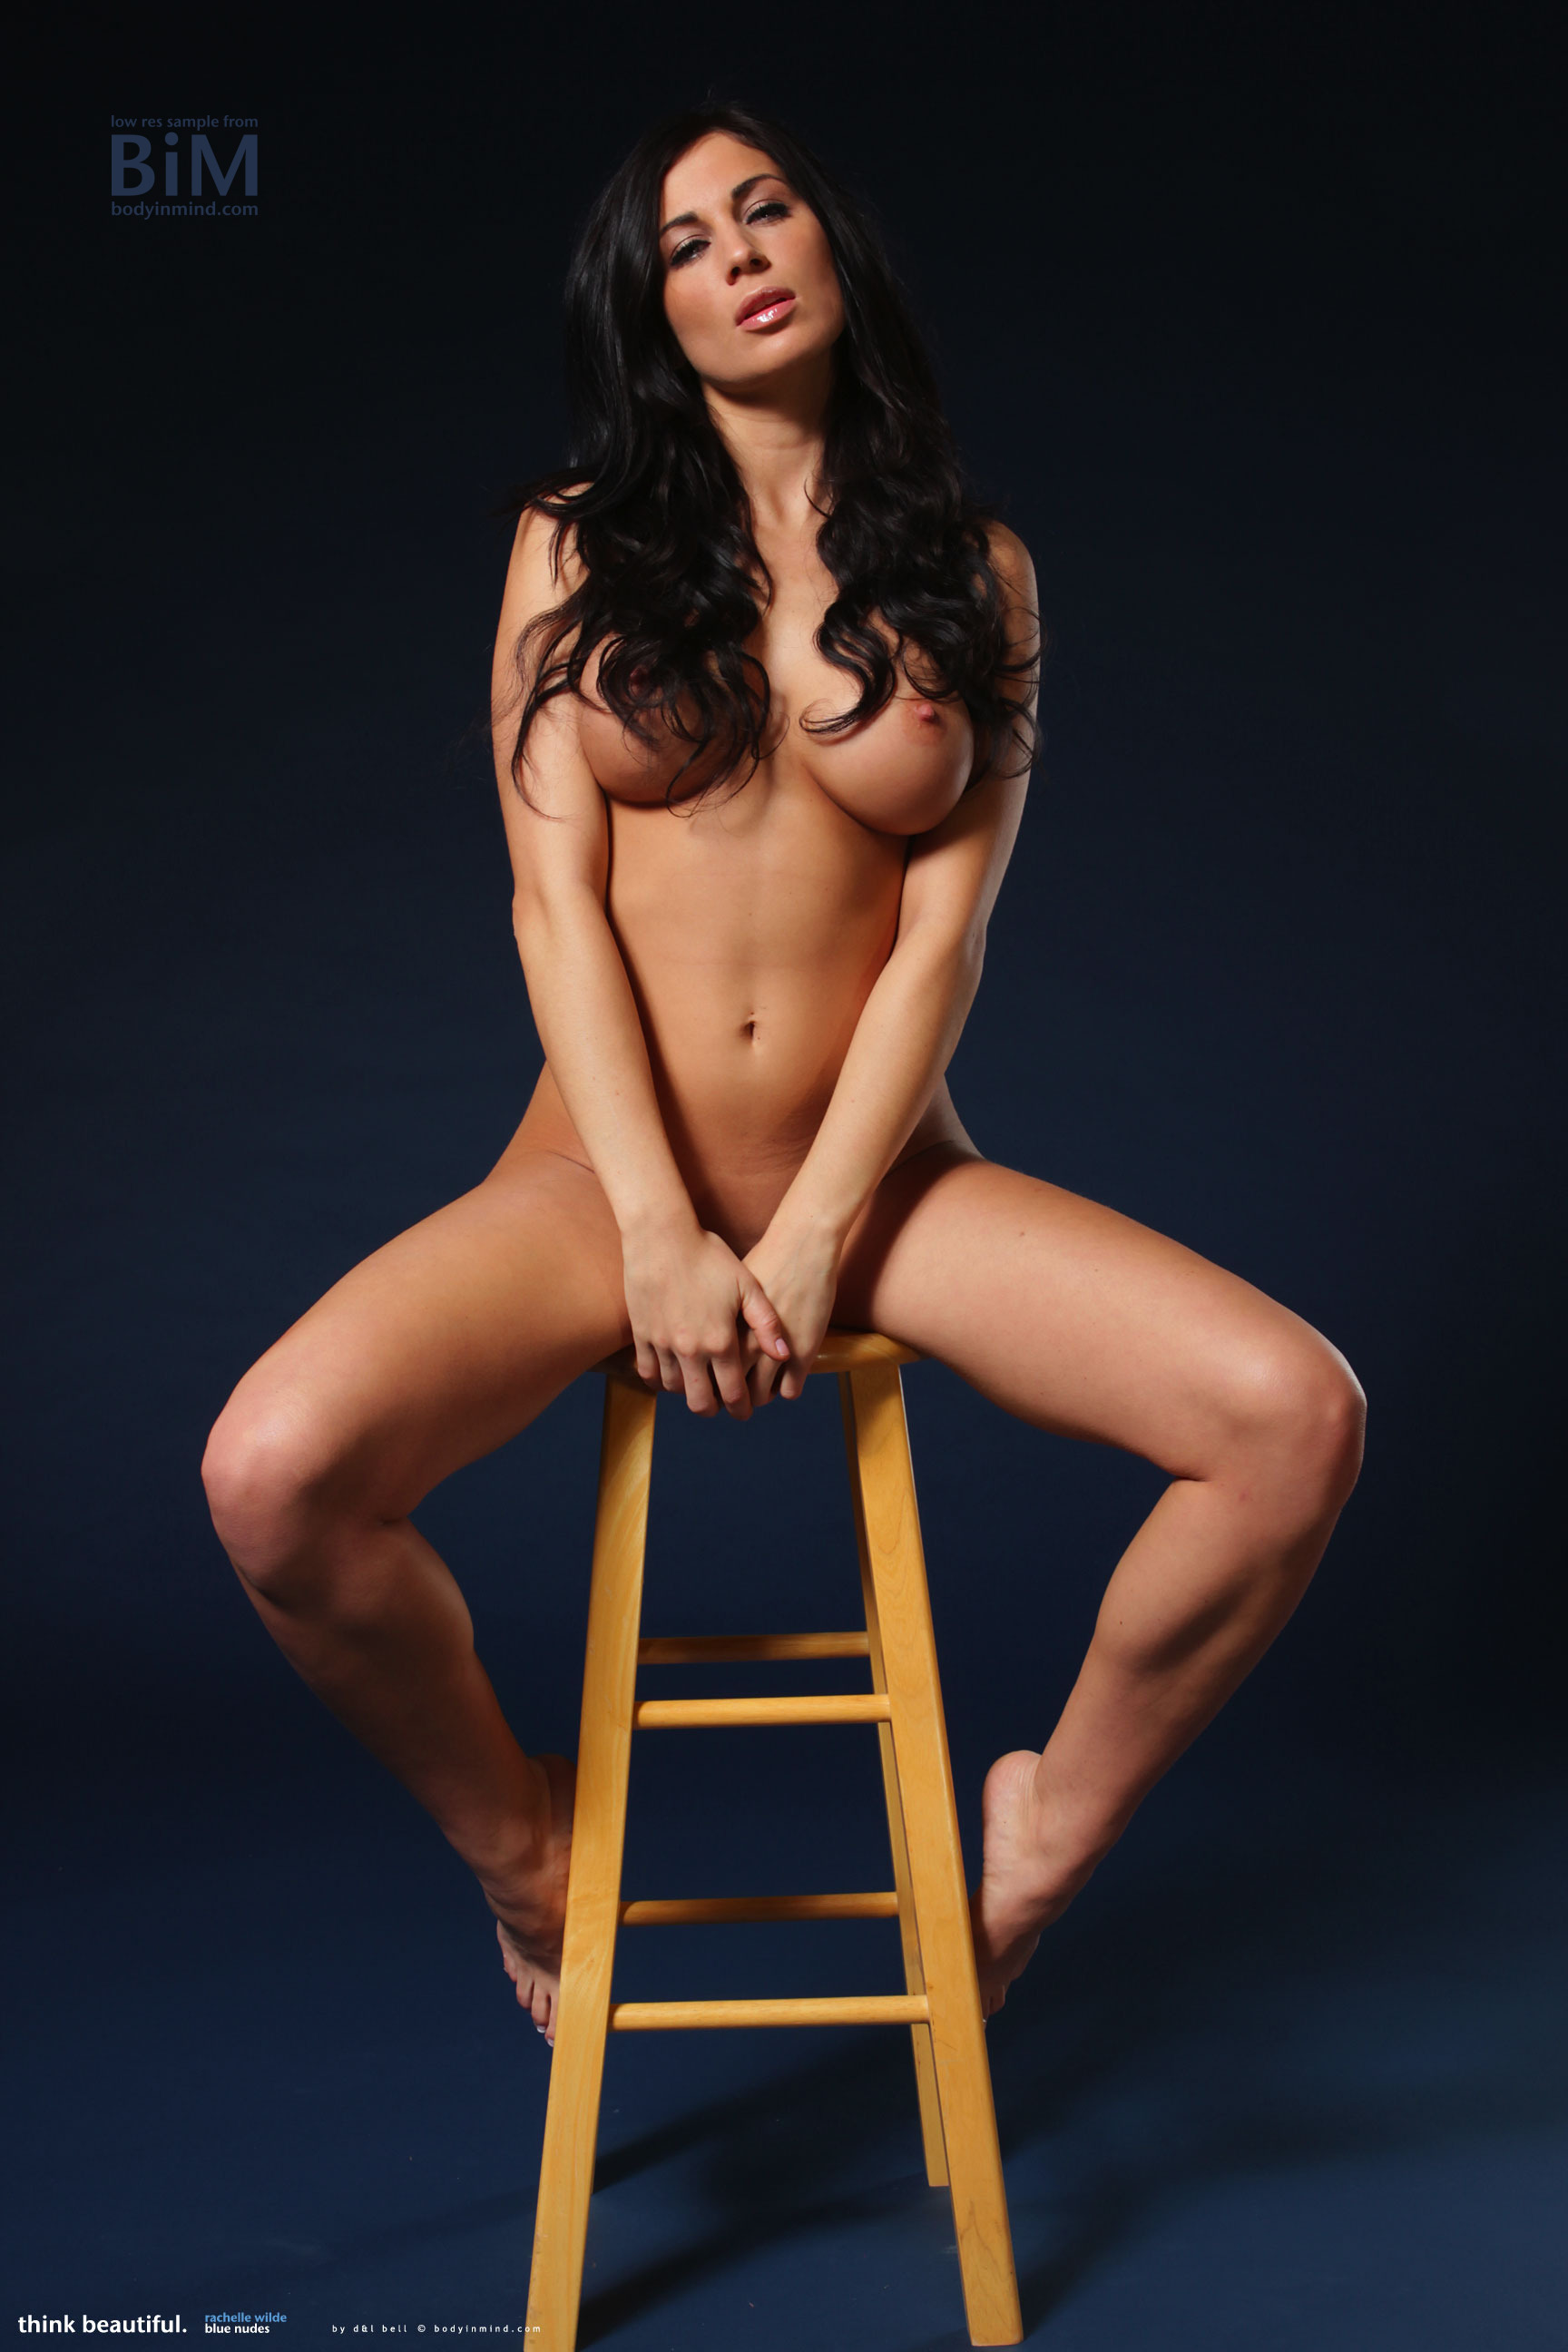 Rachelle Wilde Big Boobs Naked on a Stool